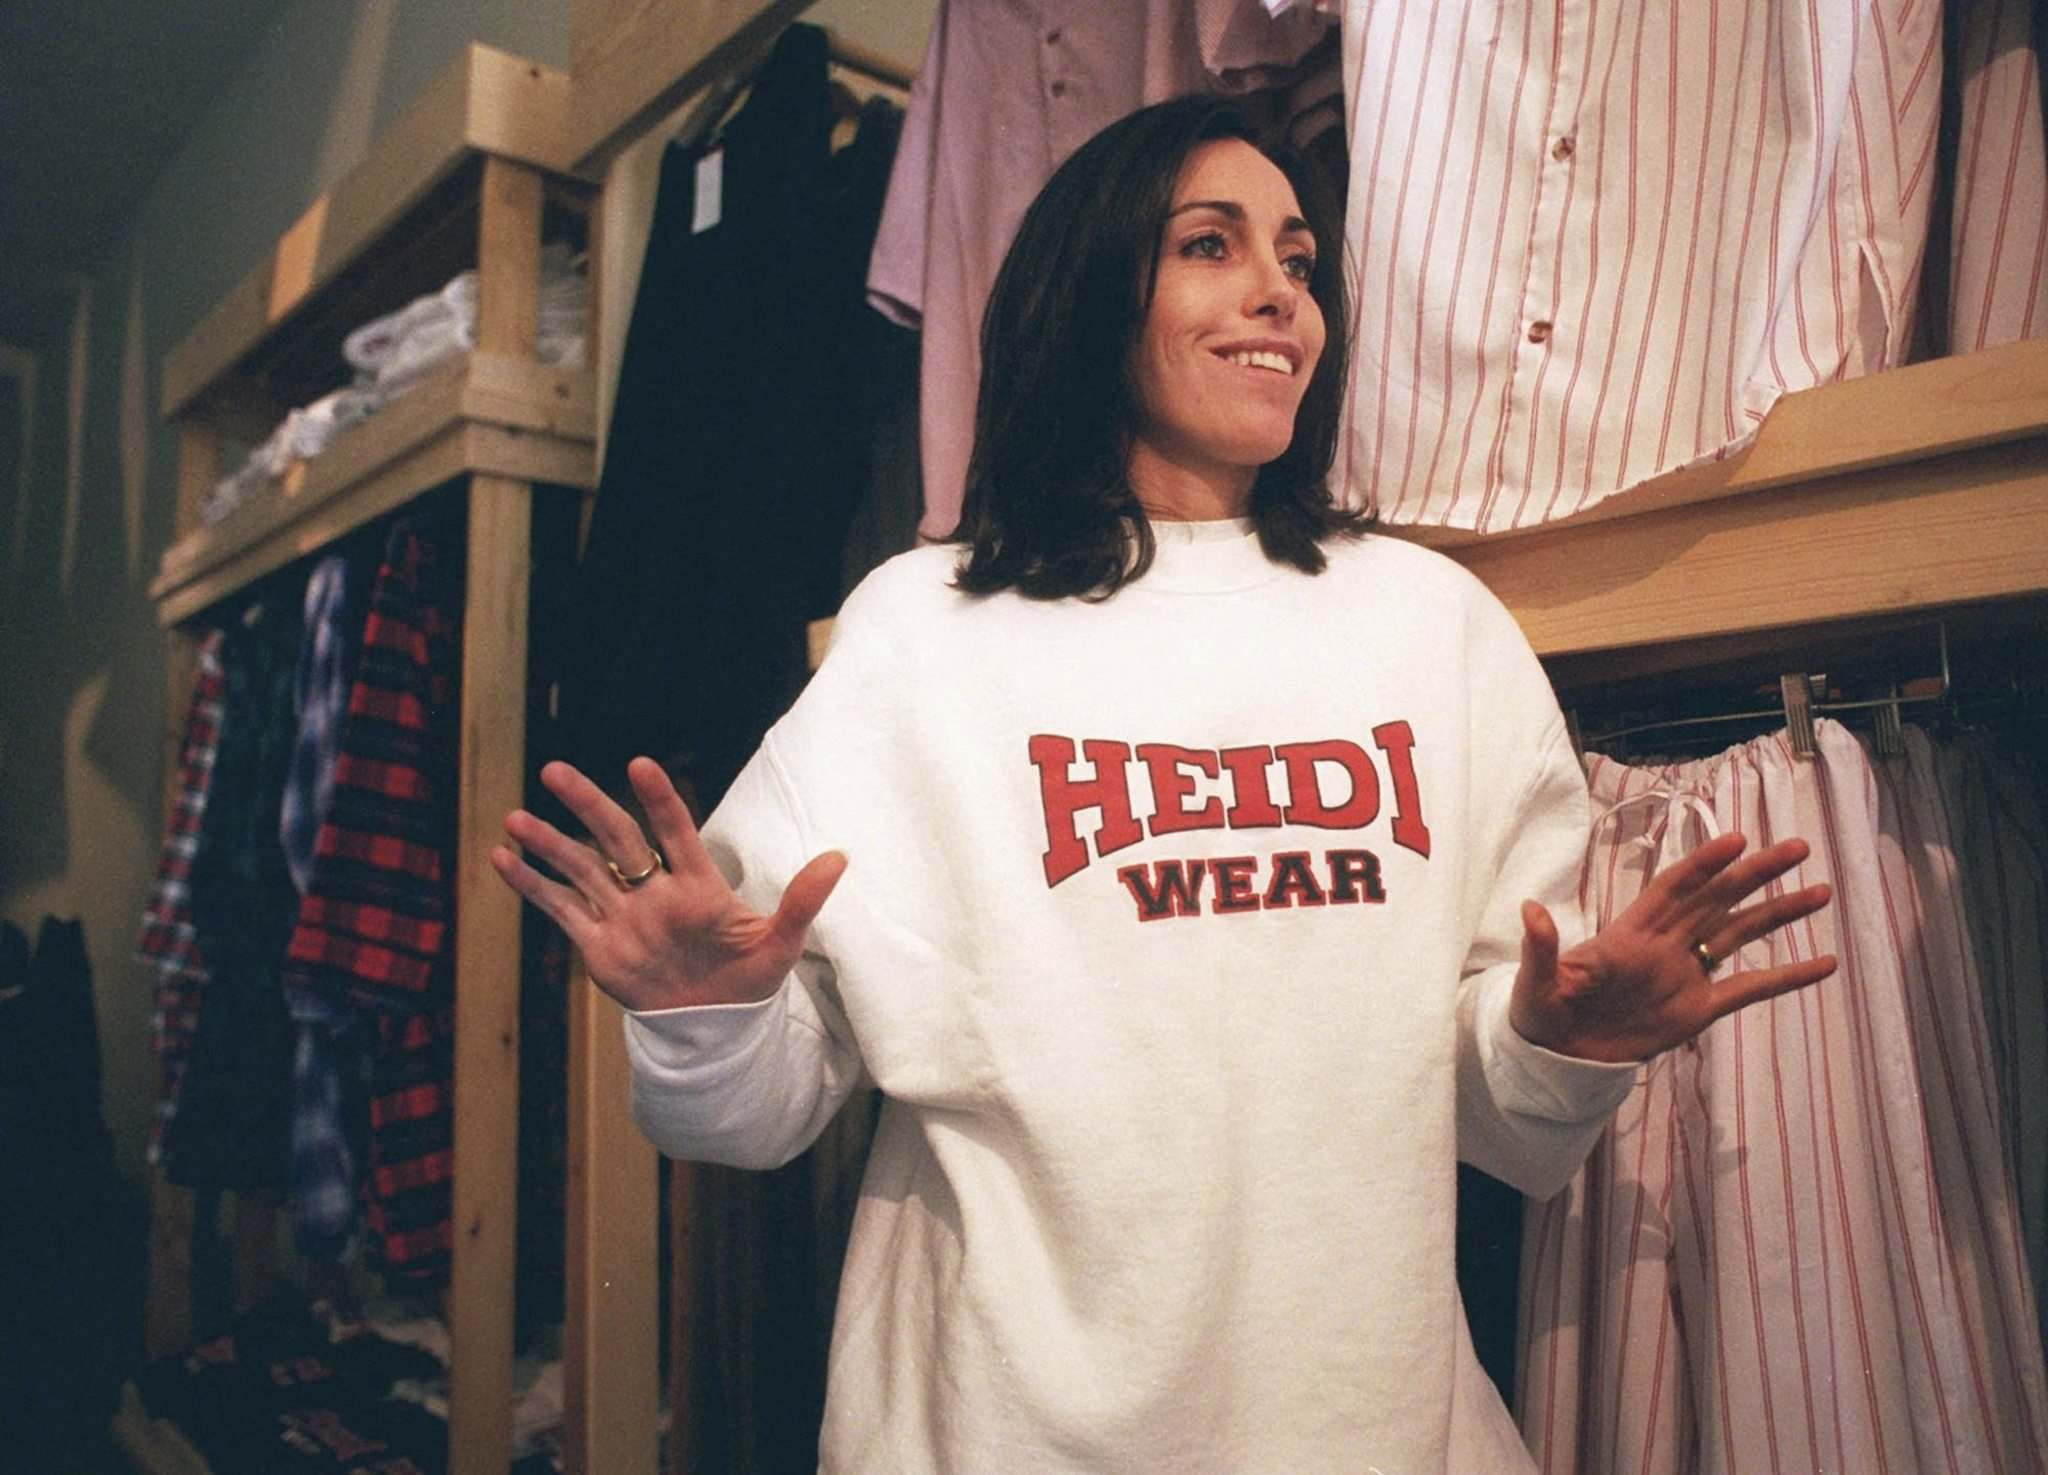 Chris Pizzello / The Associated Press files</p><p>In the 1990s, Heidi Fleiss was known as the 'Hollywood Madam.'</p>